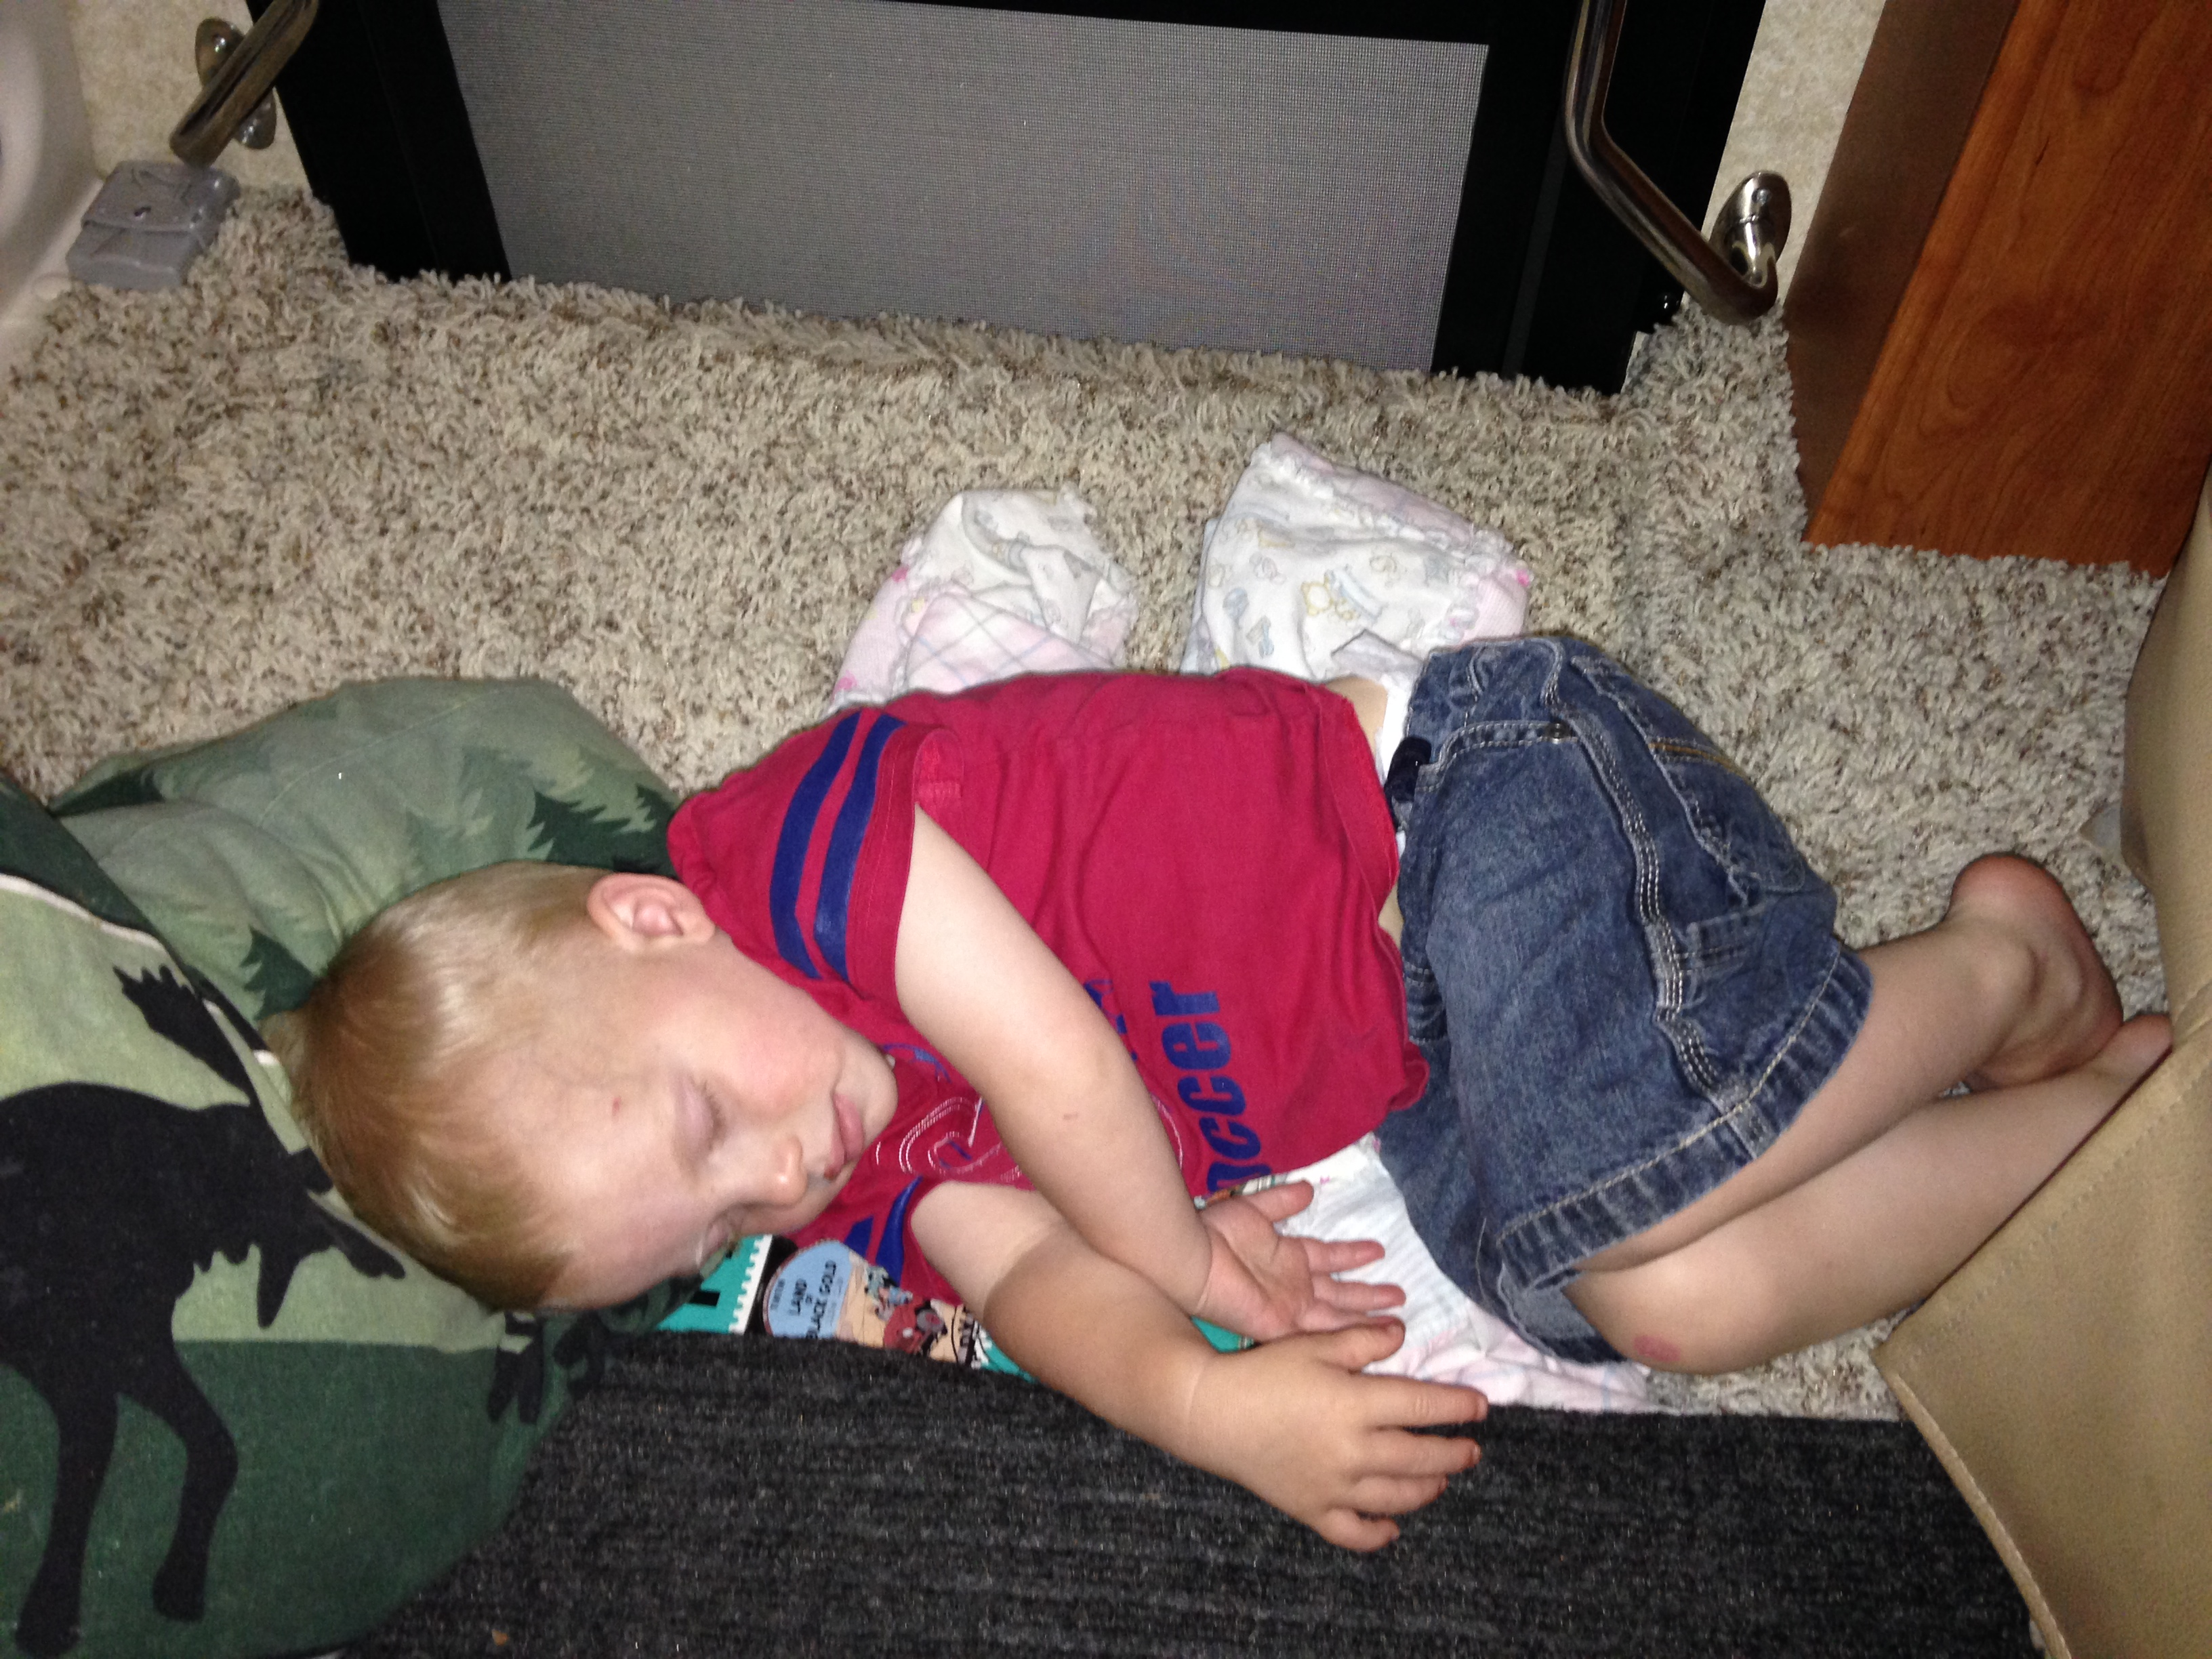 """Kolby found his little """"spot"""". He would bring his pillow, blanket, and backpack up to want the floor closed over the stairs and then he would play or take a nap. He had his own little spot close to Dad and Mom so he was all set!"""